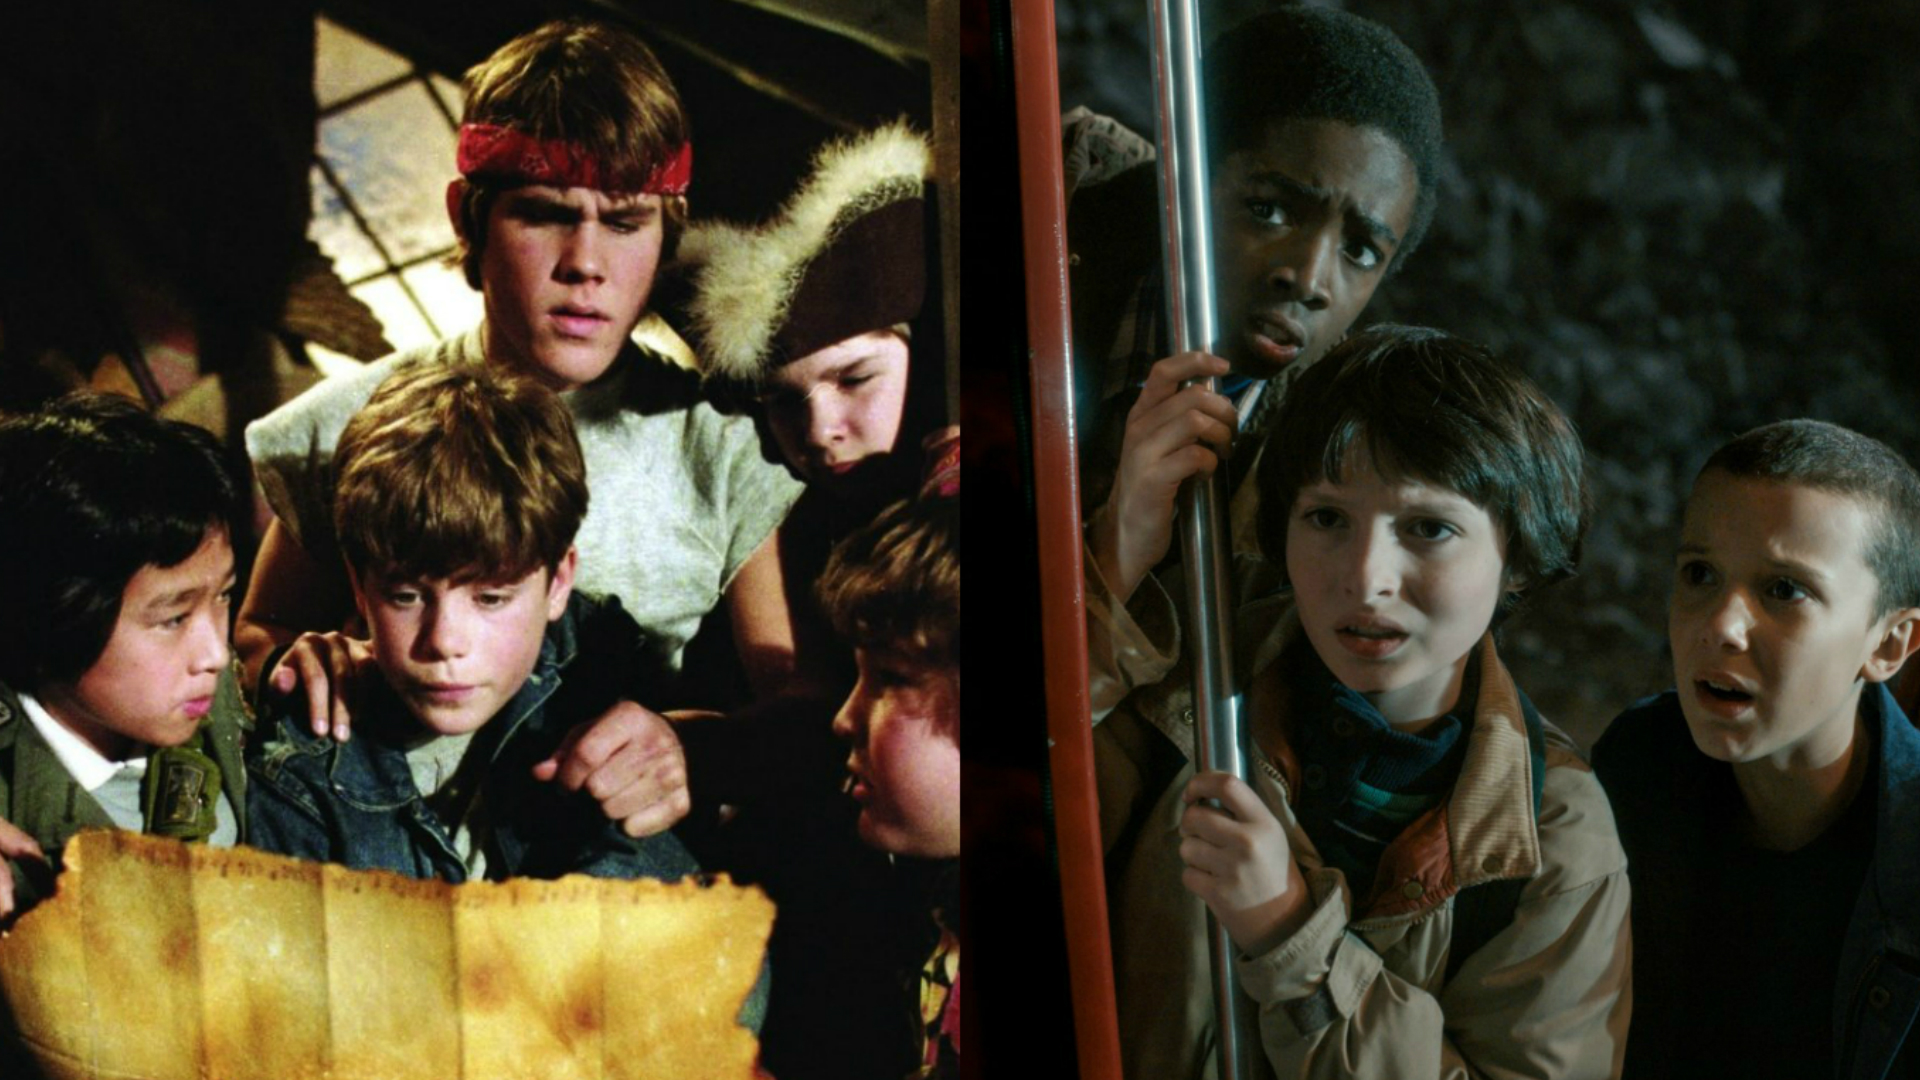 Goonies meets Stranger Things